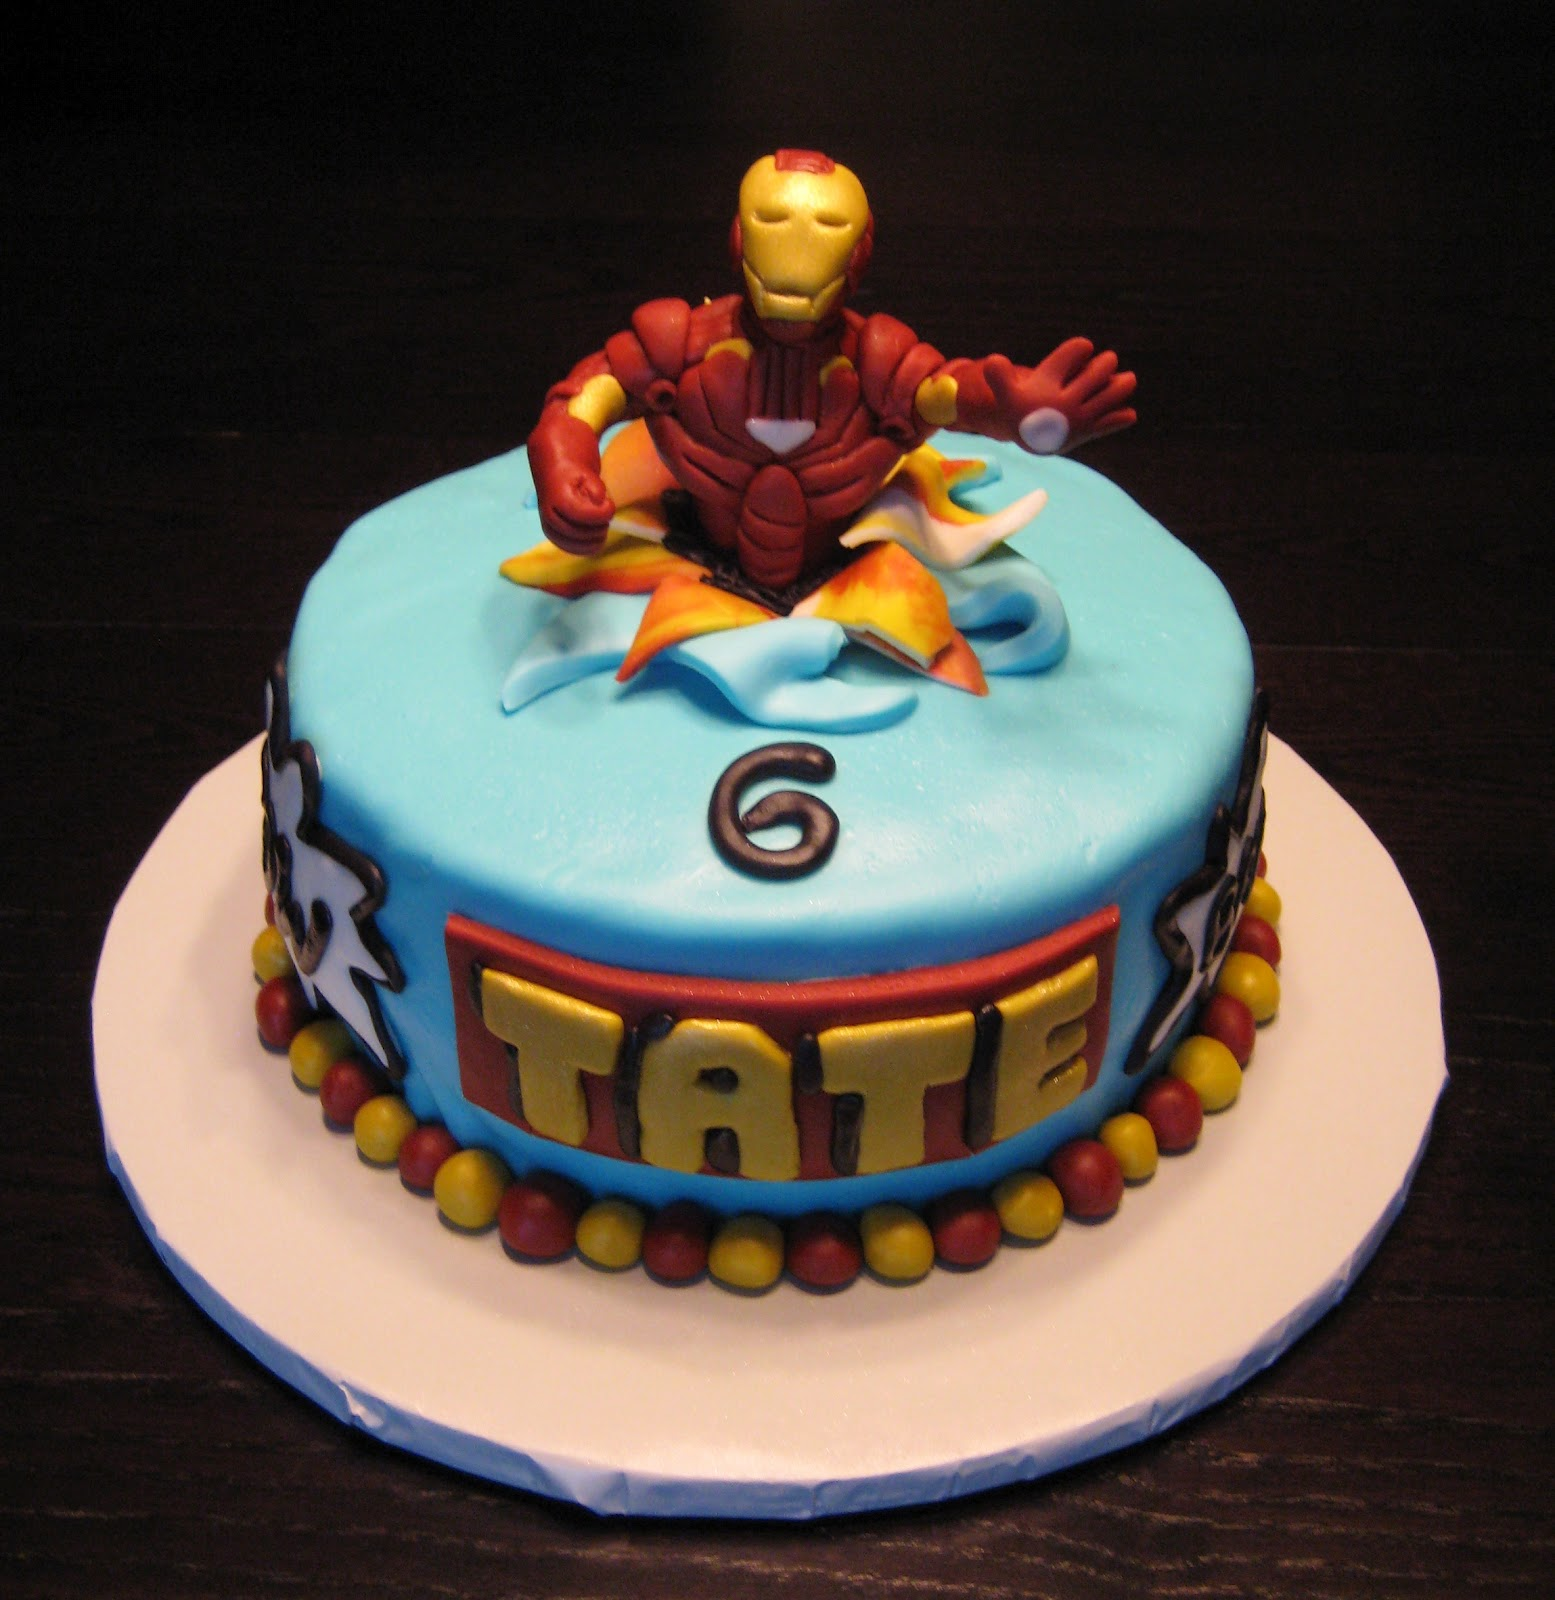 Easy Birthday Cake Man Image Inspiration of Cake and Birthday